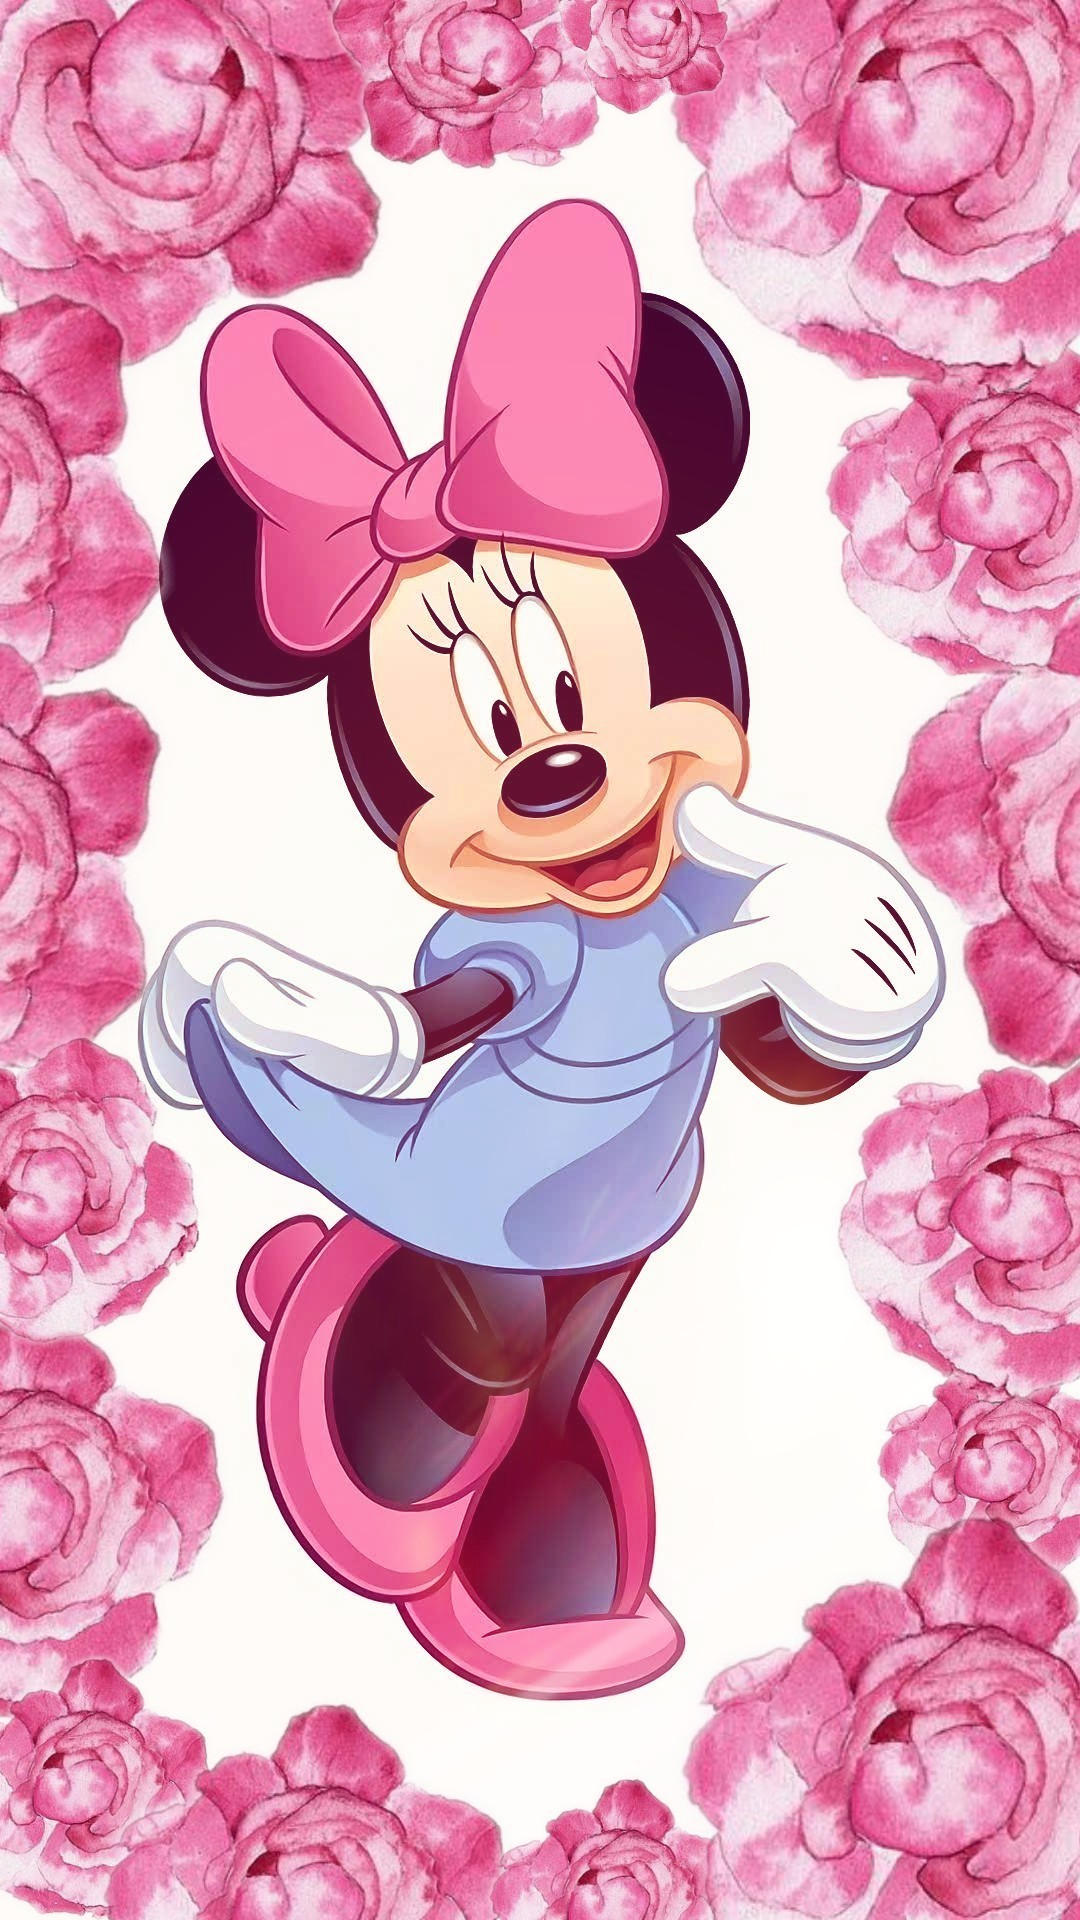 1080x1920 Minnie Mouse pink rose